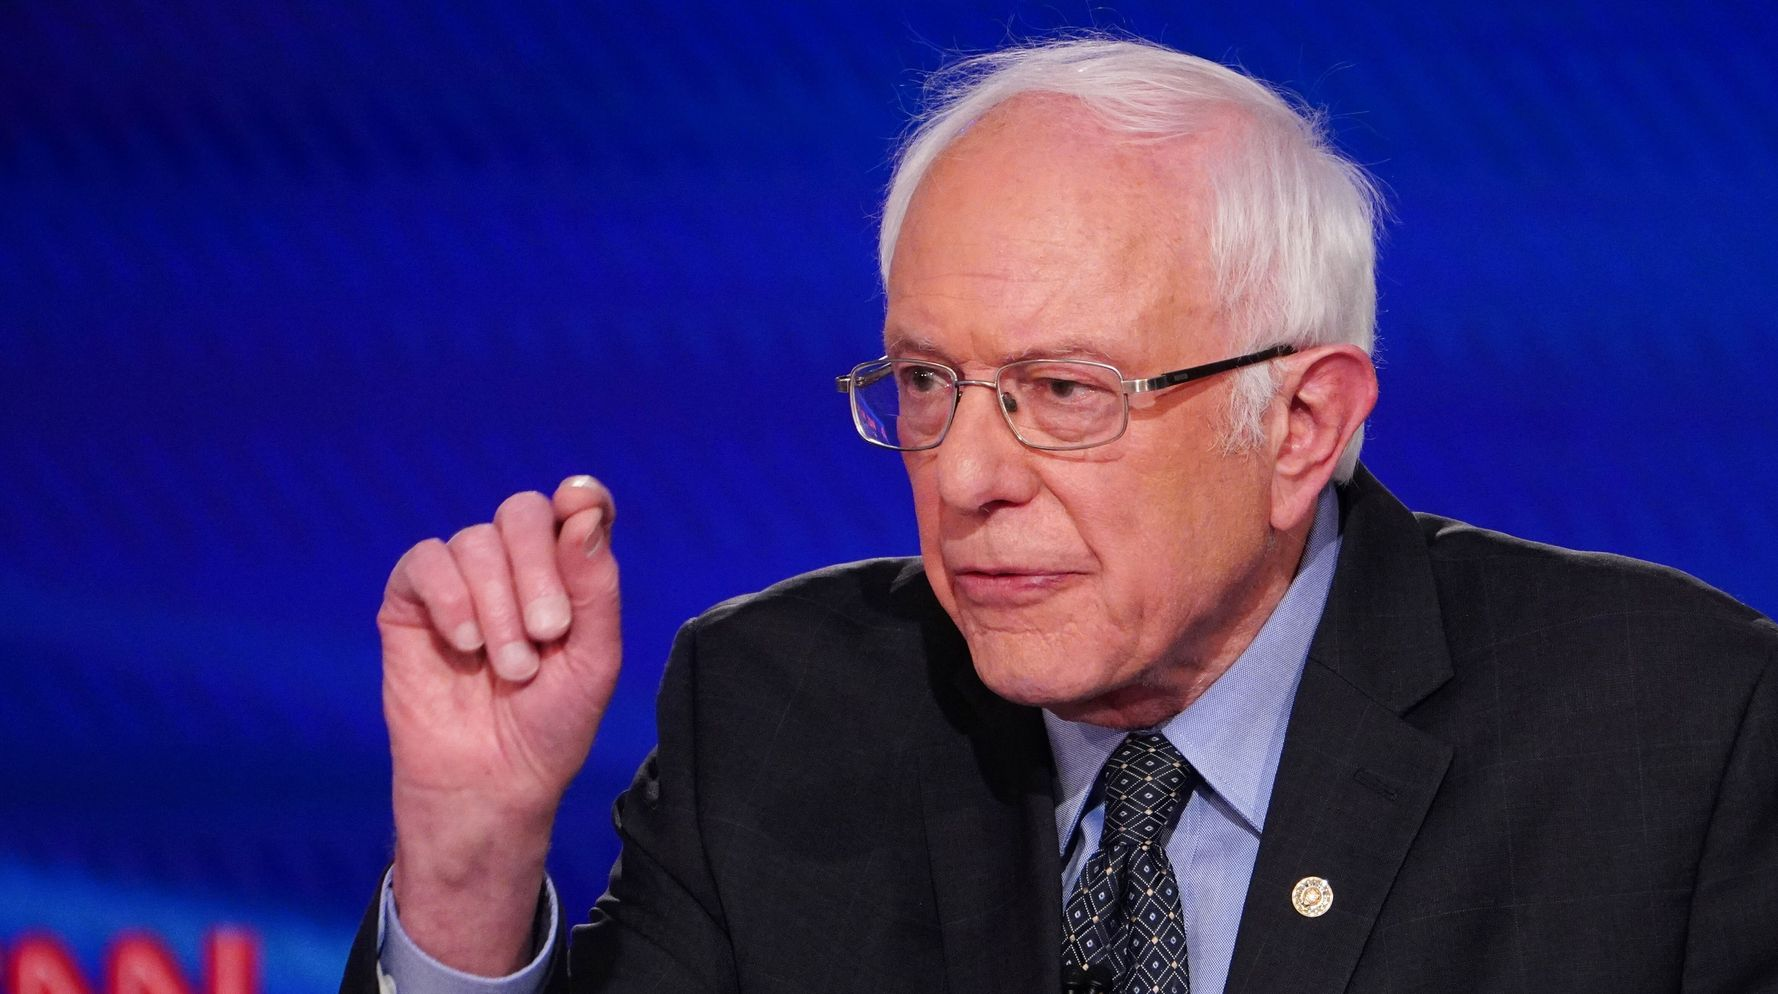 Sanders Soared Back To Life. But He Couldn't Close The Deal.